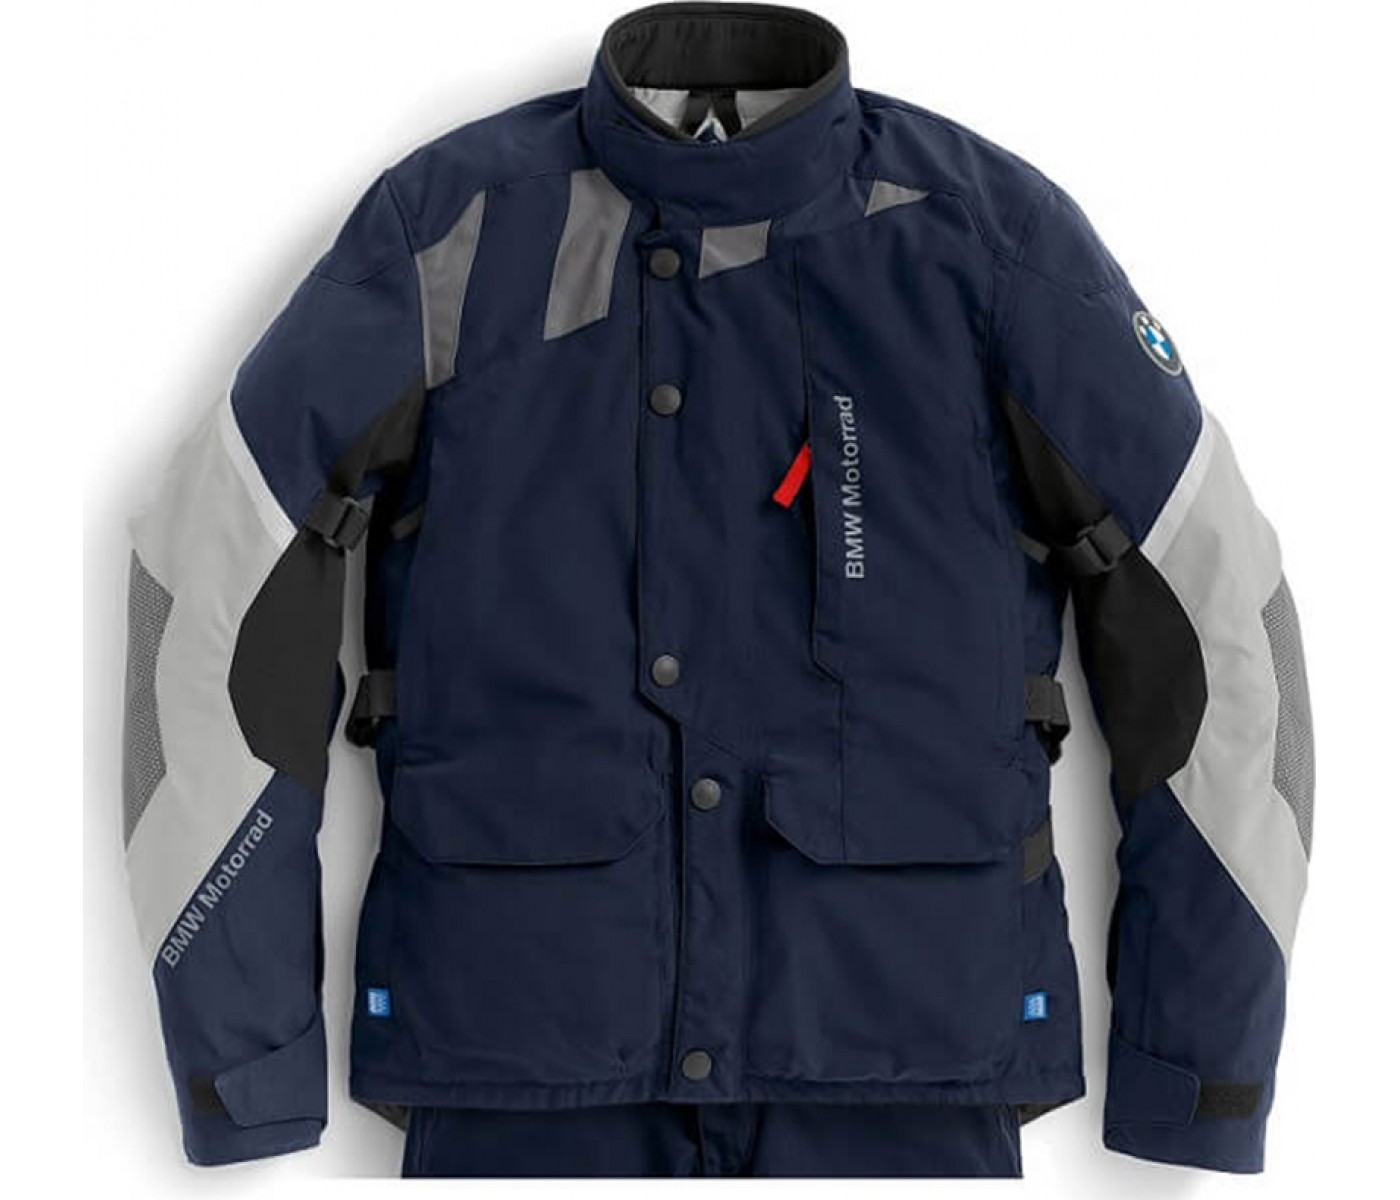 Мужская мотокуртка BMW Motorrad Jacket GS Dry, Men, Black/Blue/Grey